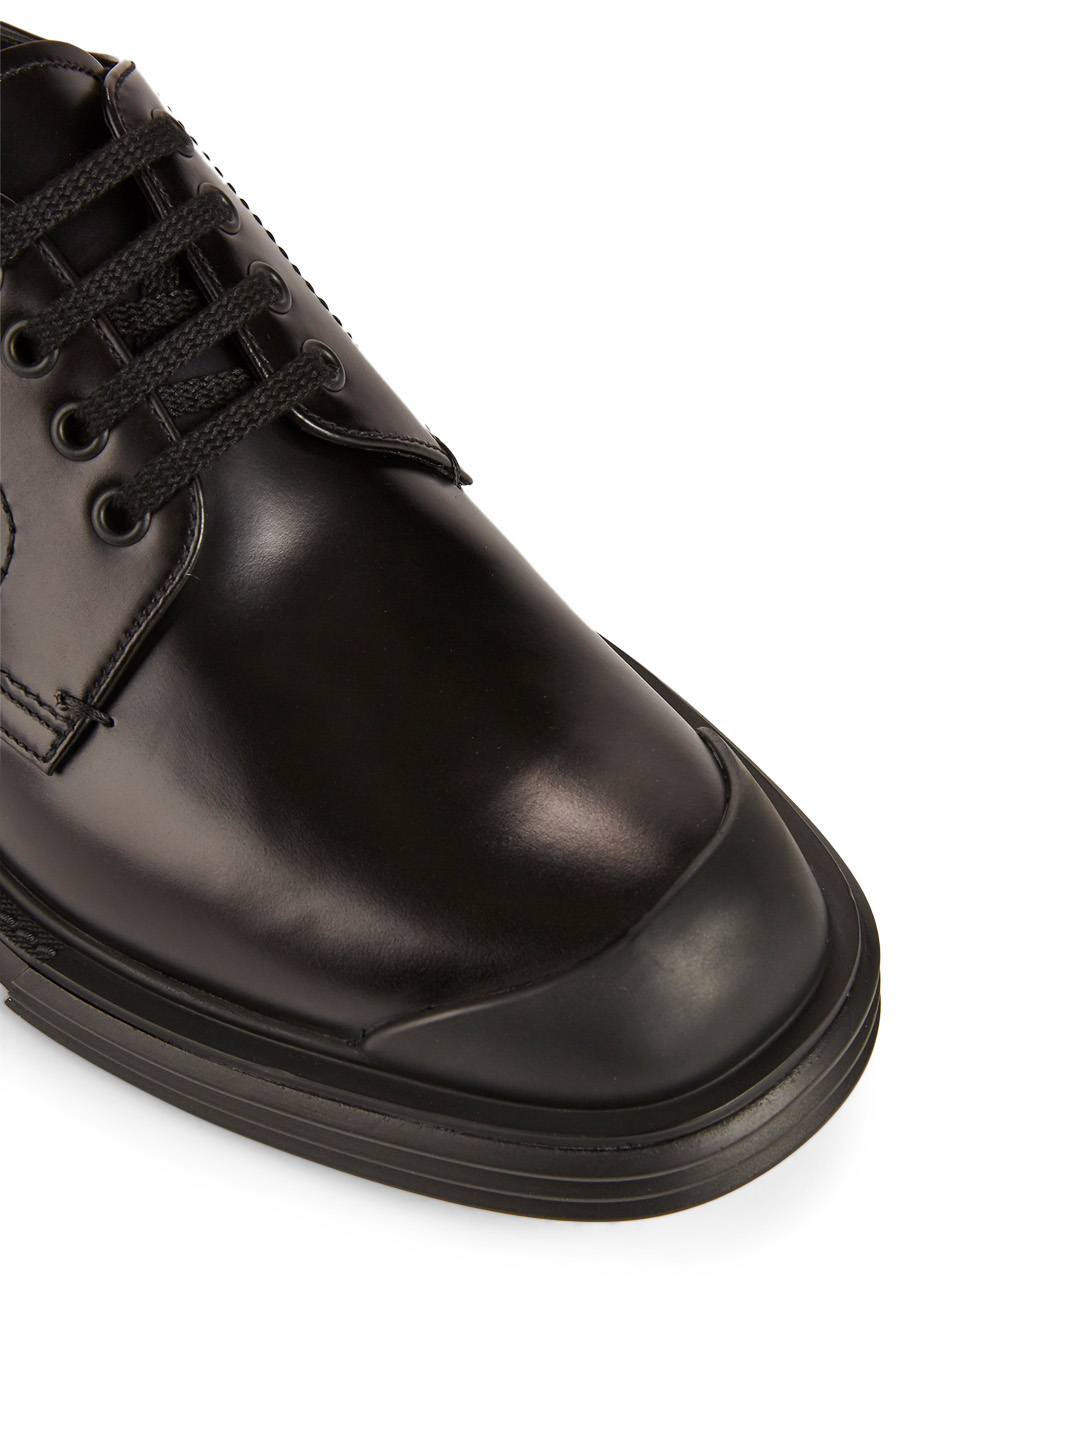 PRADA Leather Derby Shoes Designers Black